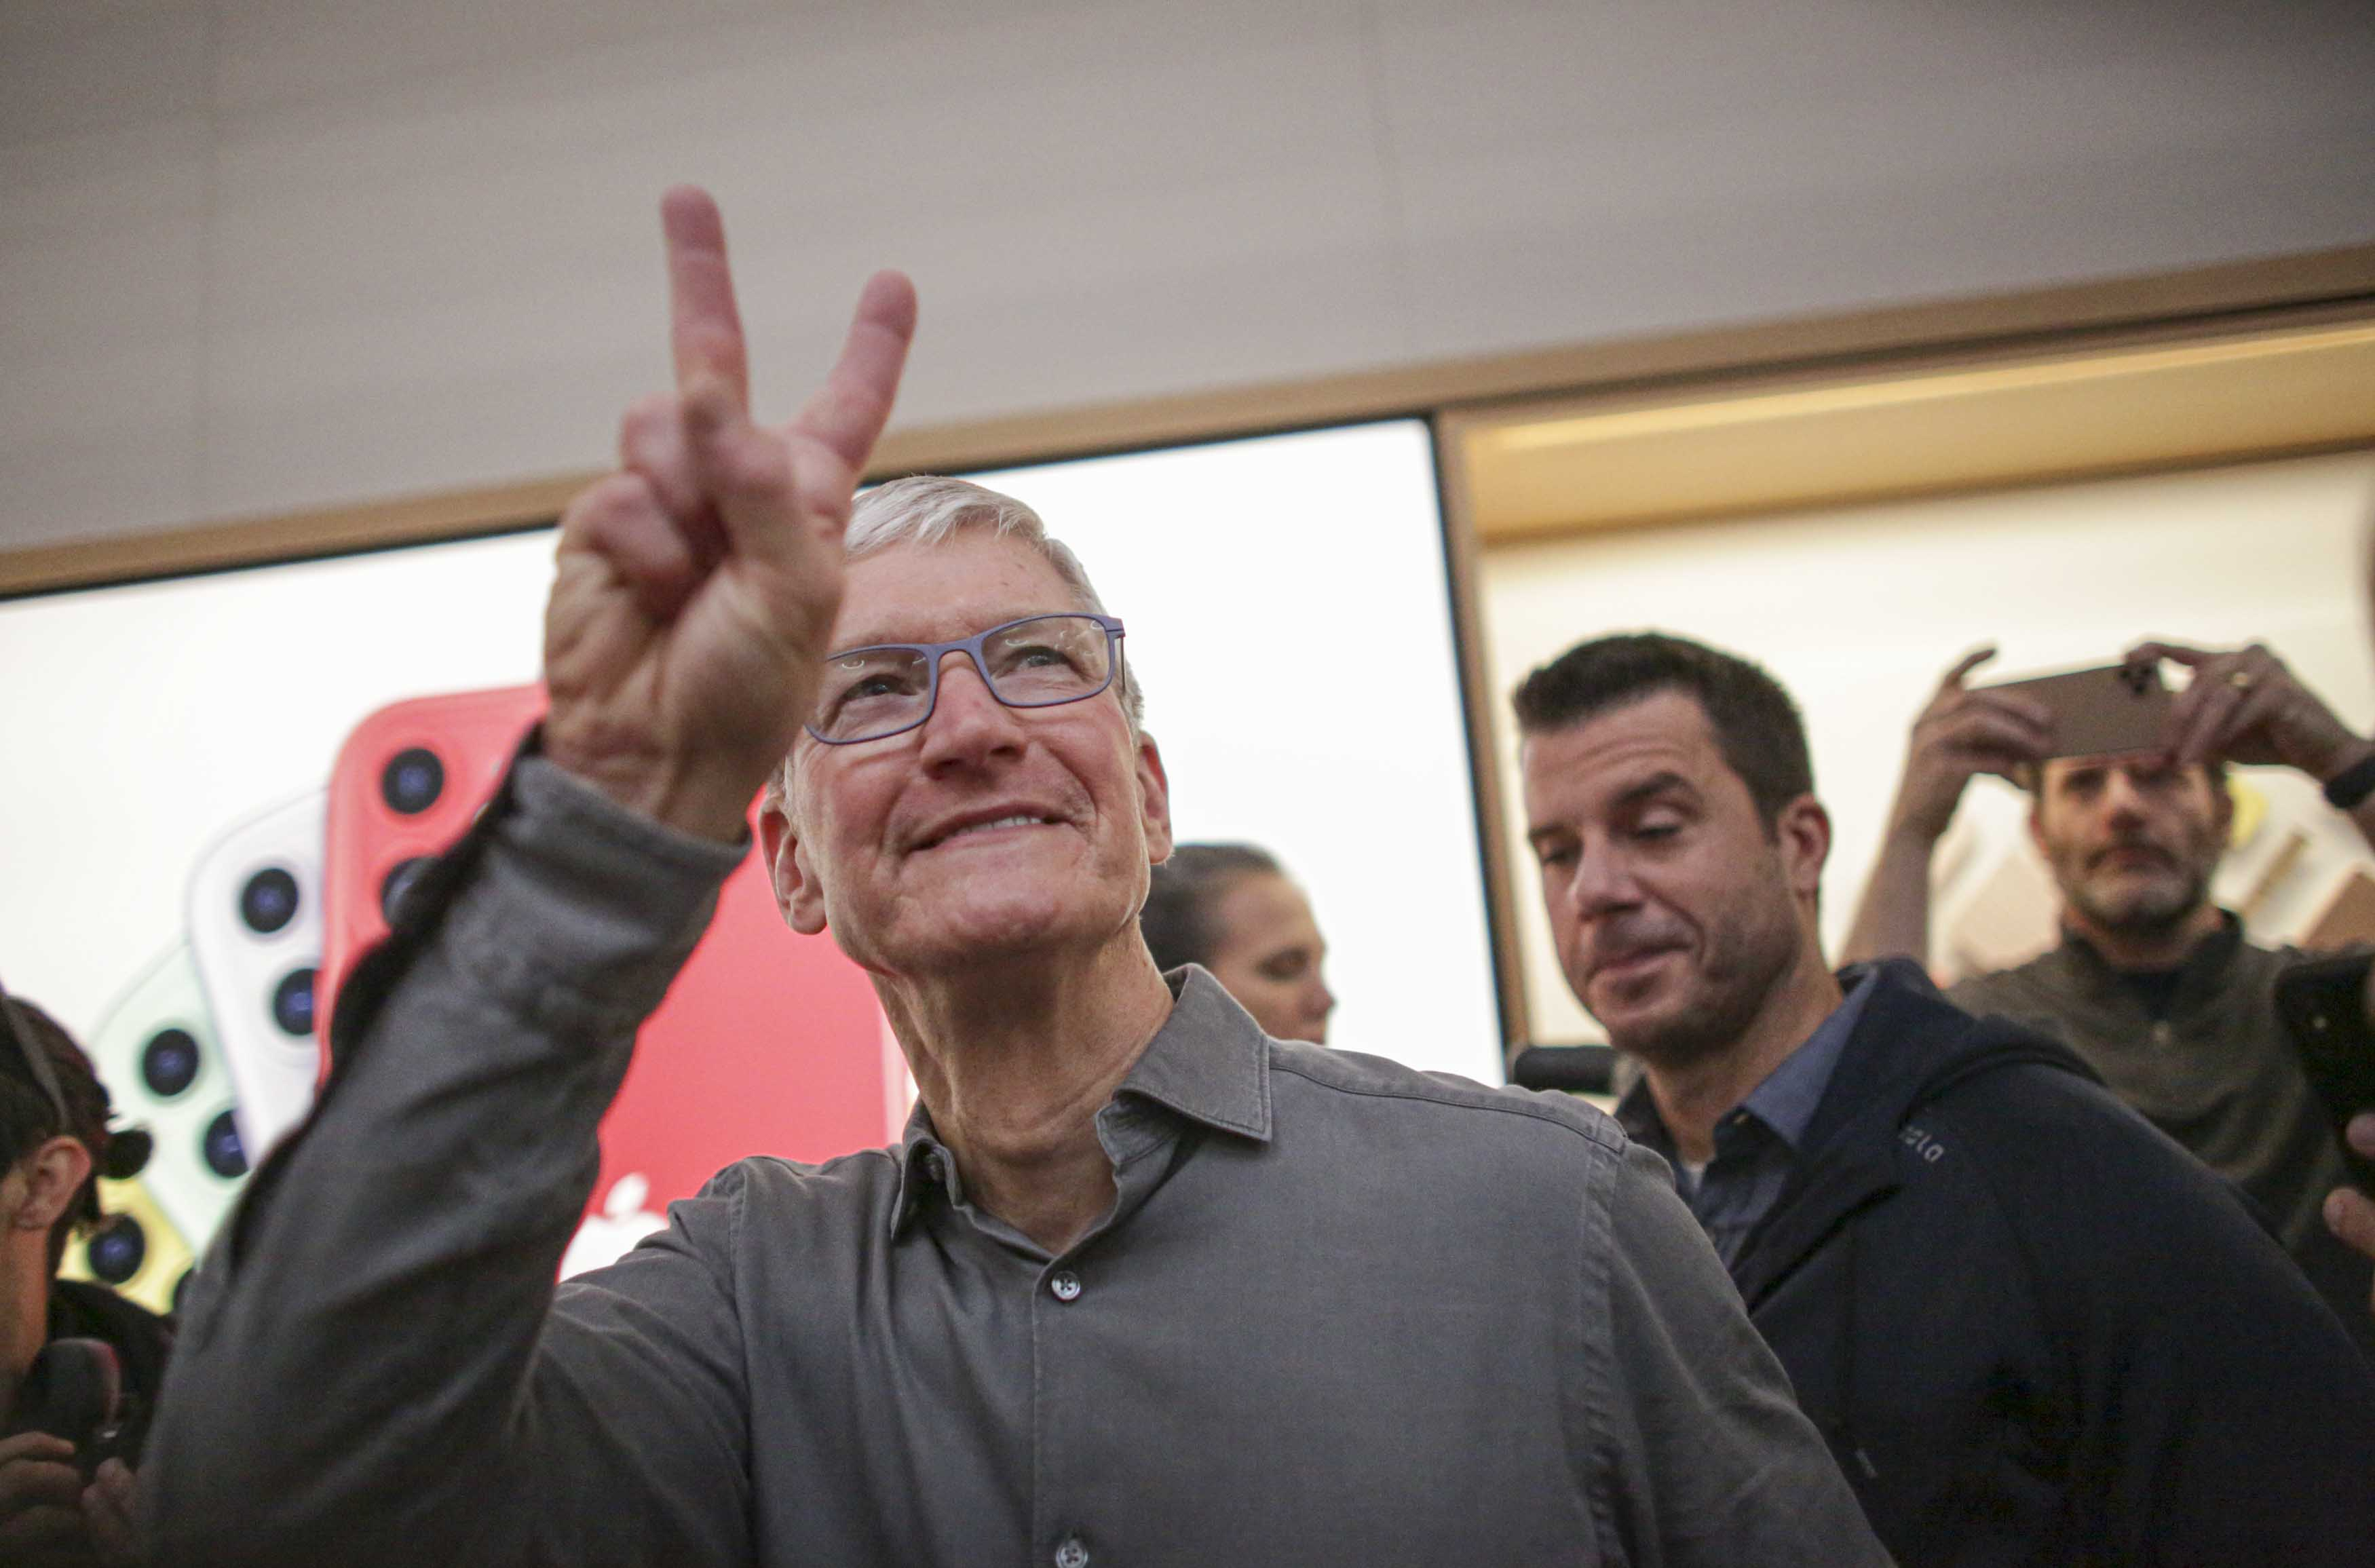 Apple has hit another all-time high, and one trader says more records are ahead